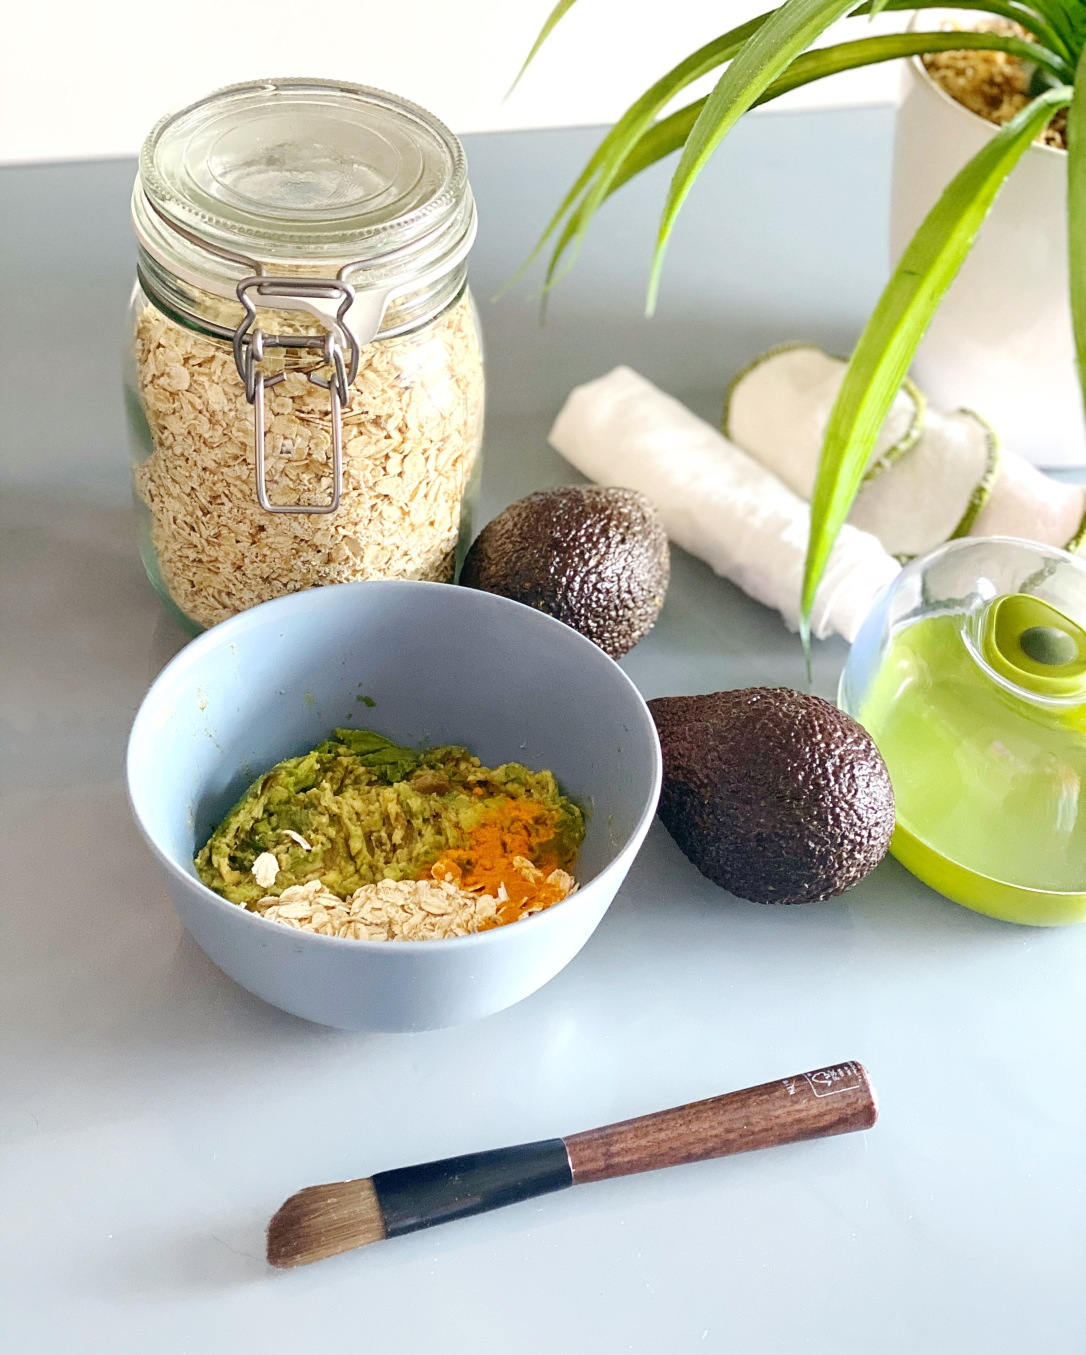 alchemy by amy uk Use up over-ripe fruit and veg - zero waste hair and skin care avocado over ripe banana oranges skin exfoliating moisturising face mask and hair mask toner face mask non toxic clean beauty homemade skin care hair care